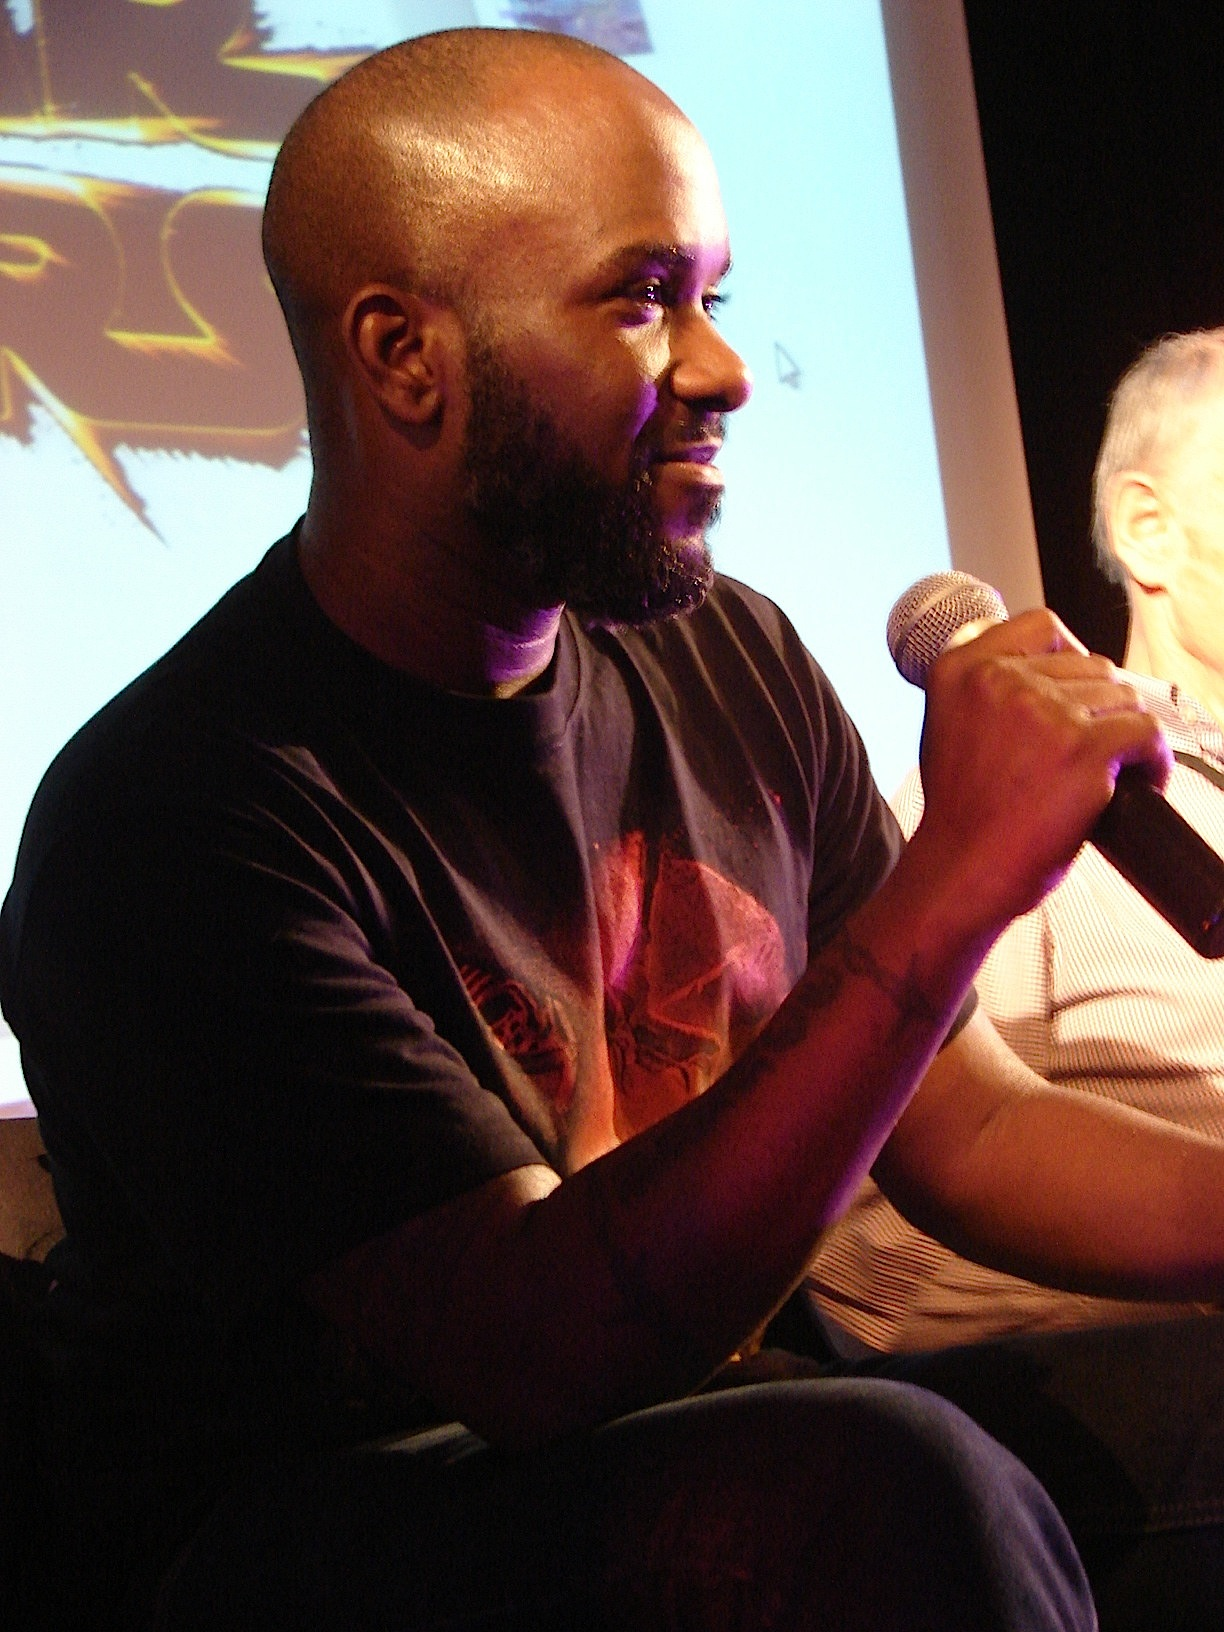 Stormtrooper Actor Phoenix James at ASFA Star Wars Convention in Amélie les Bains in South of France - Photo by Virginie Maurille 37